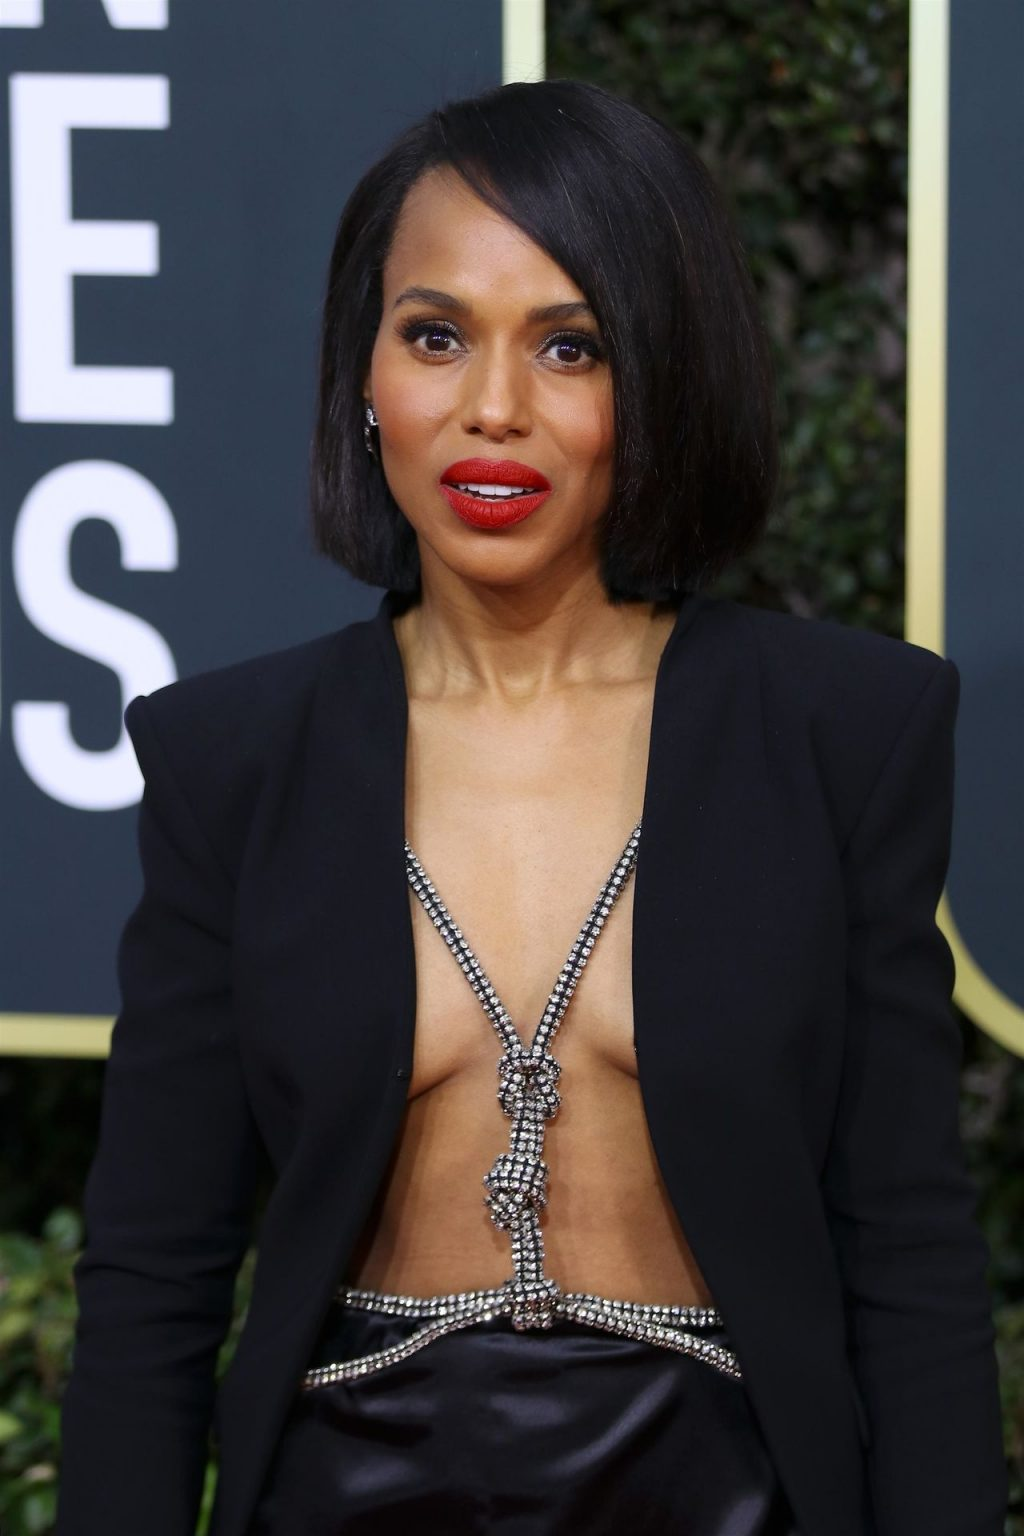 Kerry Washington Braless (38 Photos + Video)